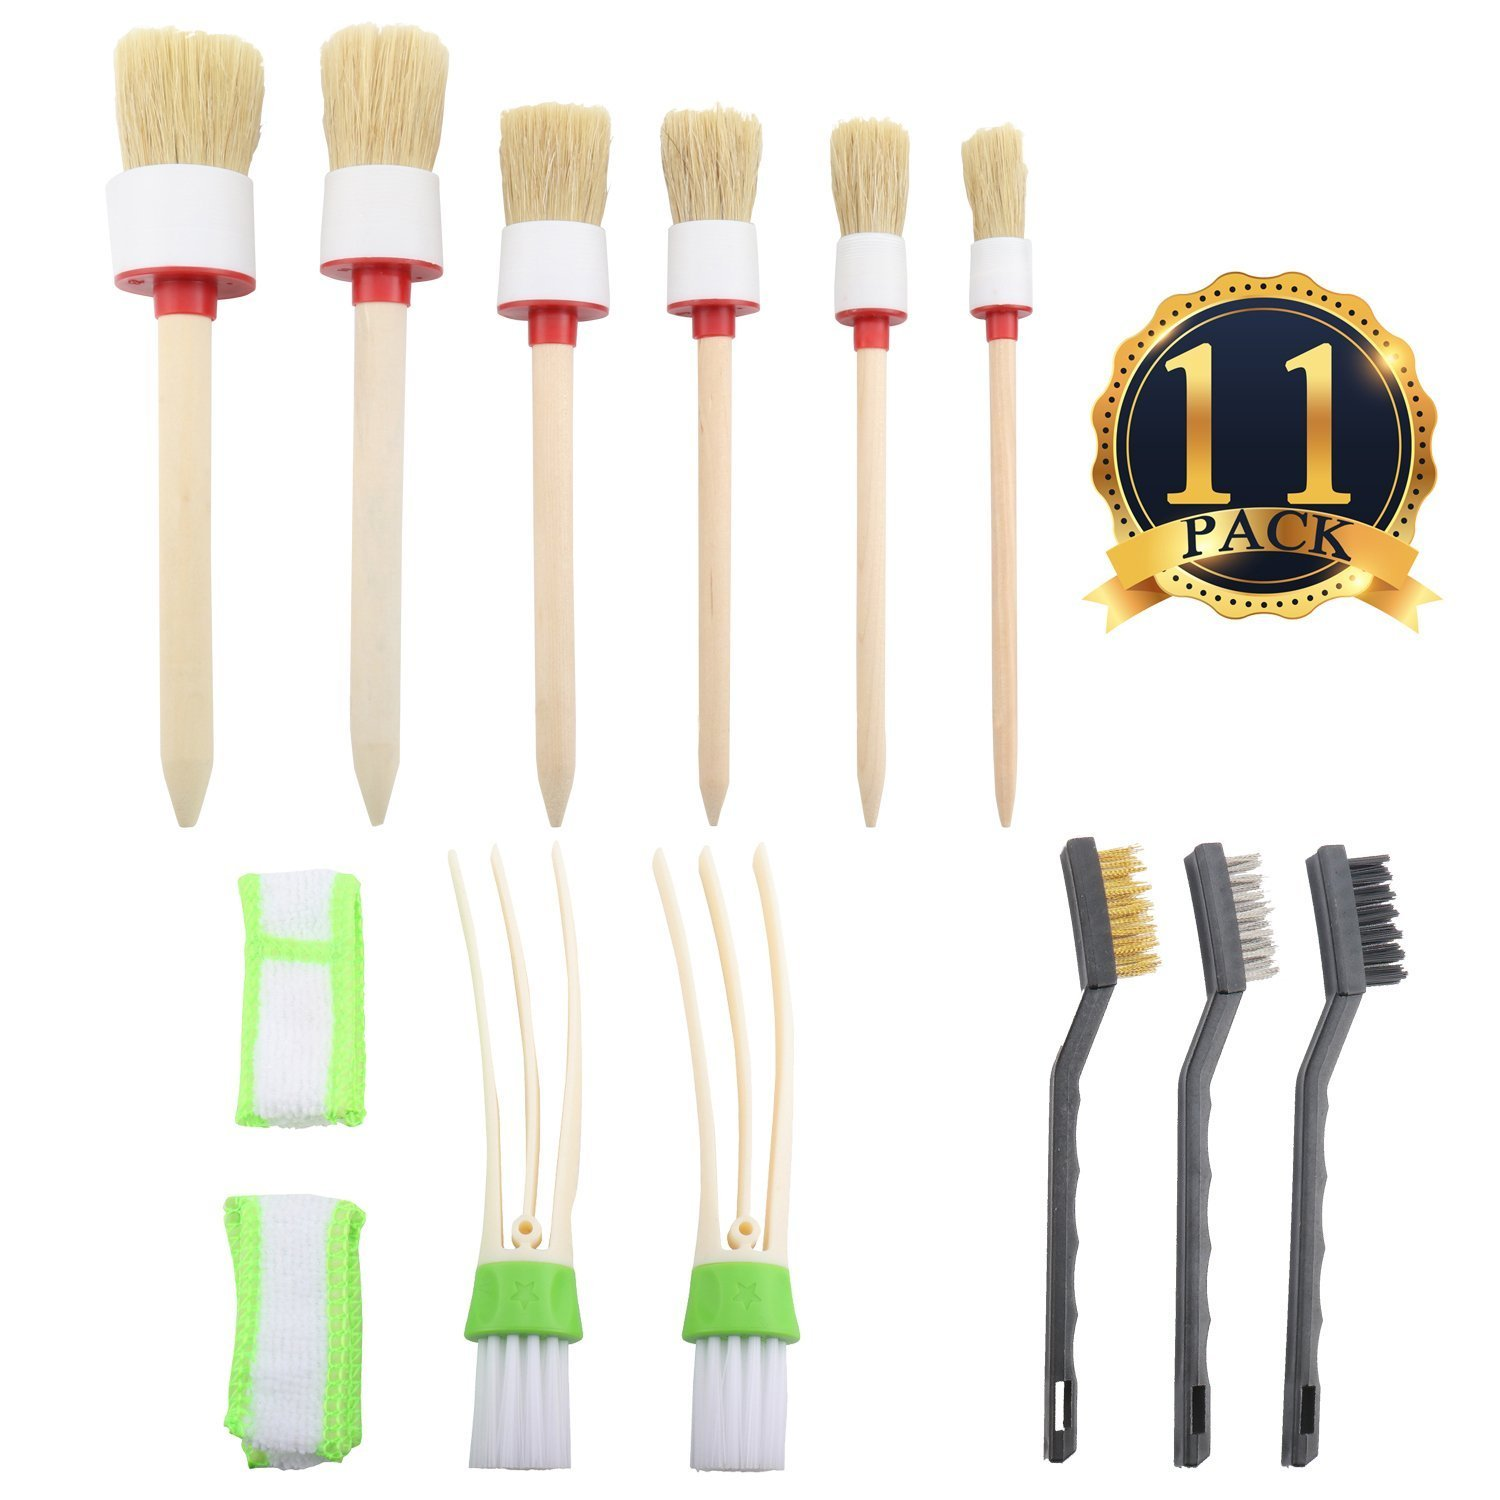 Yooyee Auto Detailing Brush Set, 11 Pcs Car Cleaner Brush Set, Including Soft-bristled Detail Brushes, Cloth Cleaner and Wire Brush, Perfect for Cleaning Wheels, Dashboard, Interior, Exterior, Leather, Air Vents, Emblems